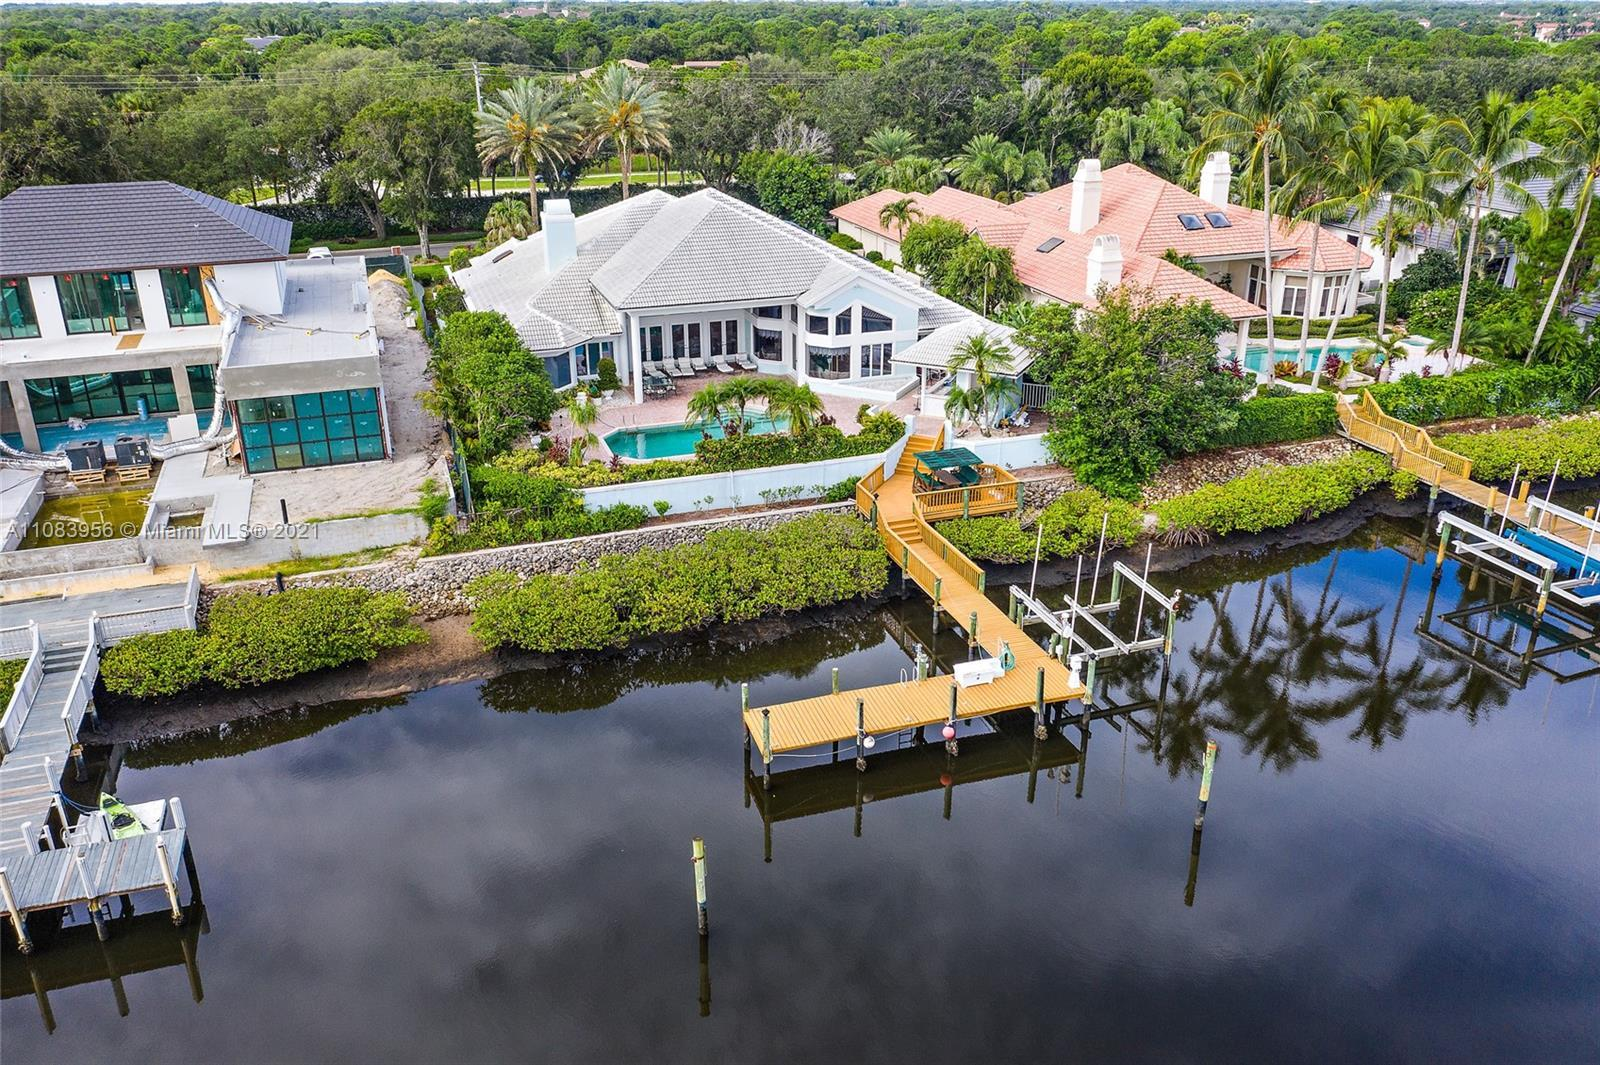 Great Opportunity - This waterfront estate home has 4 bedrooms, 3.5 car garage, open kitchen to fami